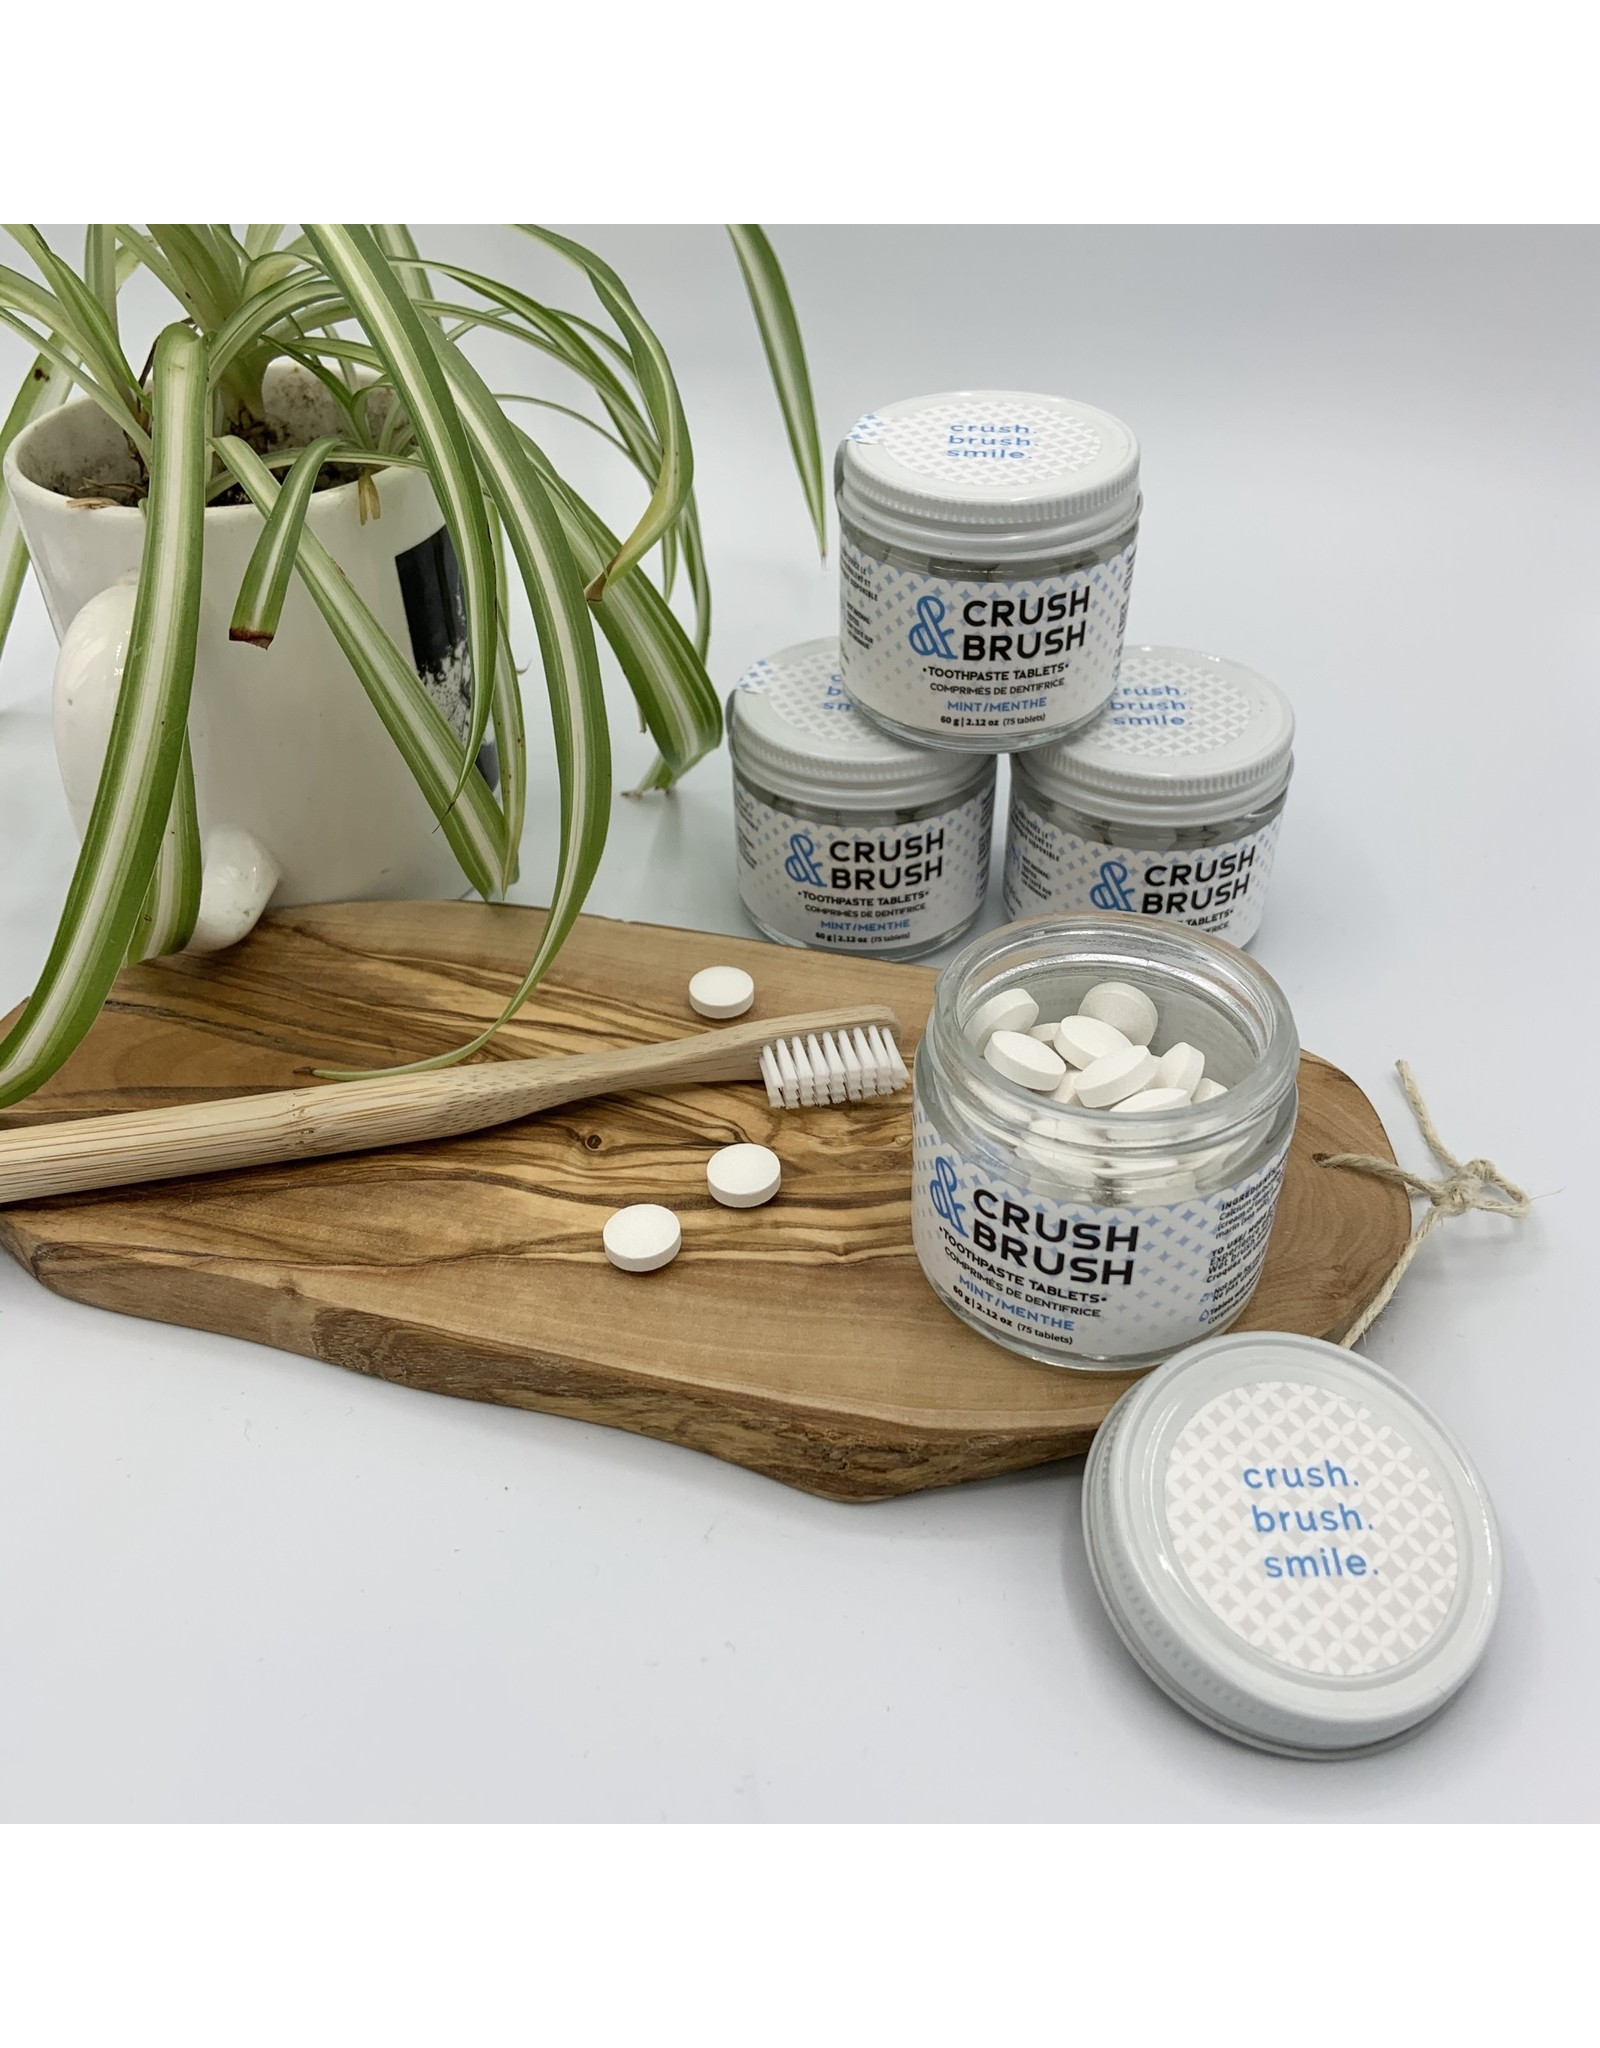 Nelson Naturals Toothpaste Tablets by Nelson Naturals Crush + Brush